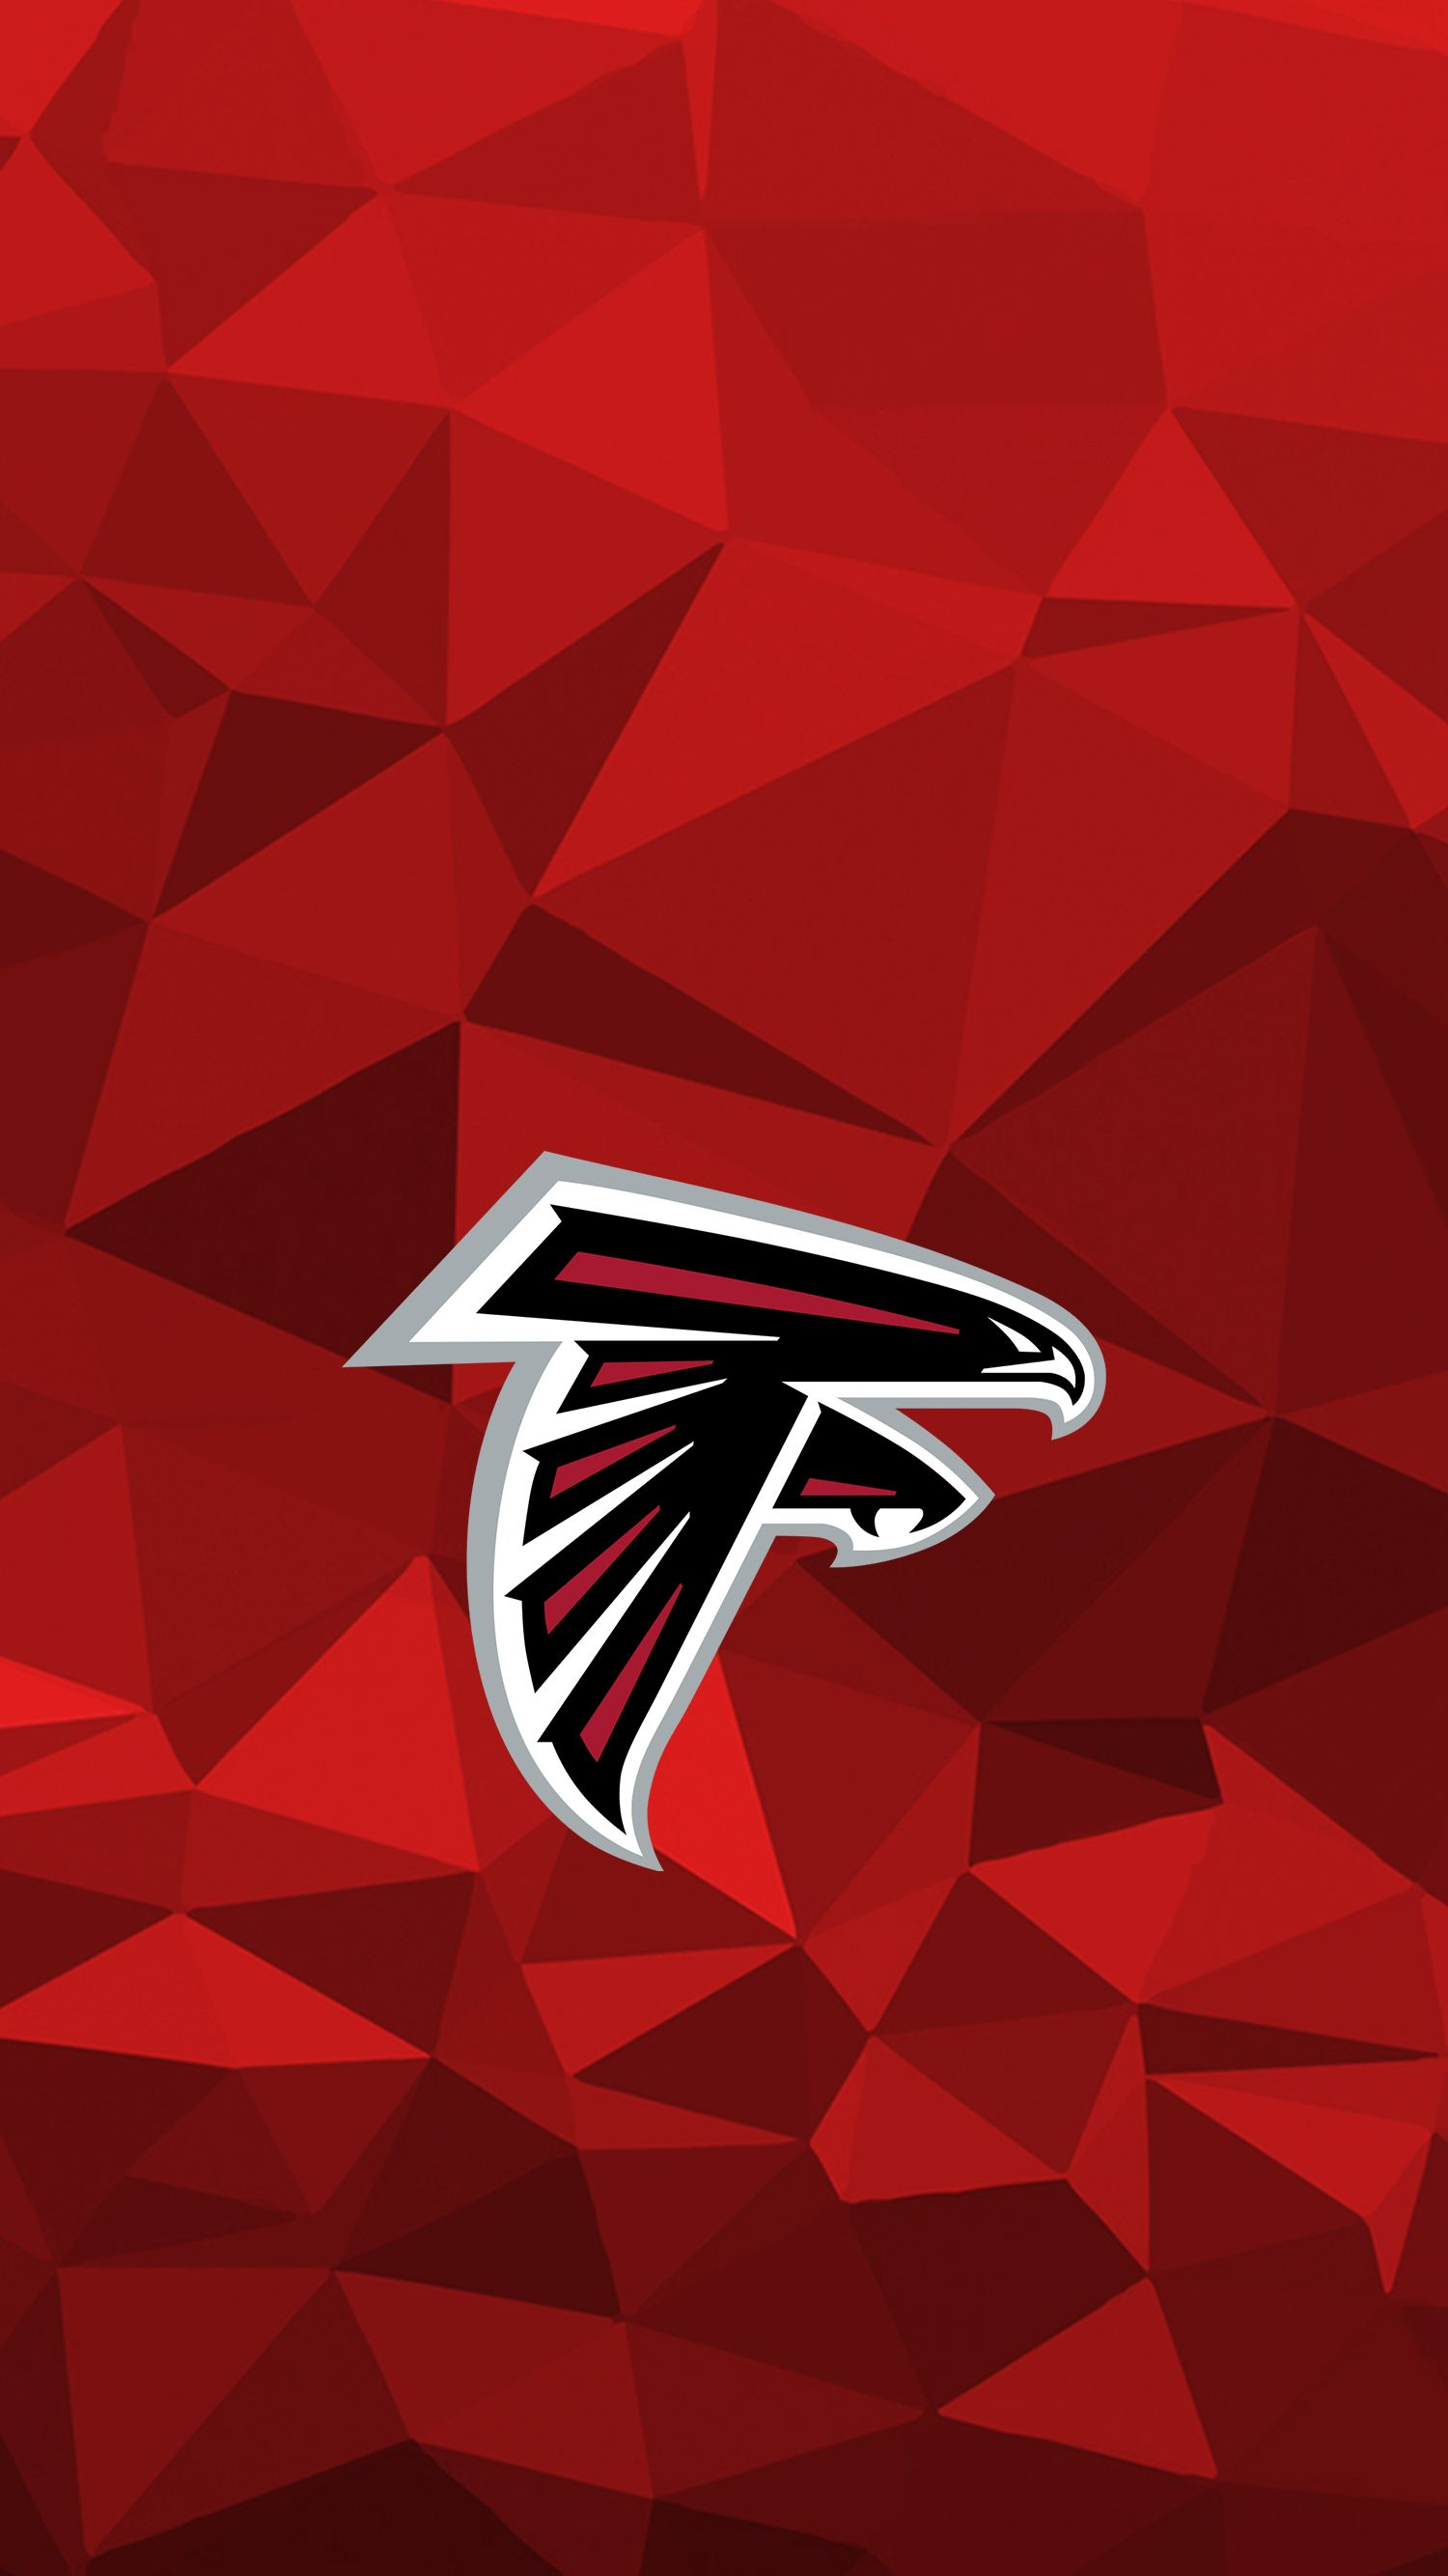 Atlanta Falcons Iphone Wallpaper Album On Imgur Atlanta Falcons Wallpaper Atlanta Falcons Logo Atlanta Falcons